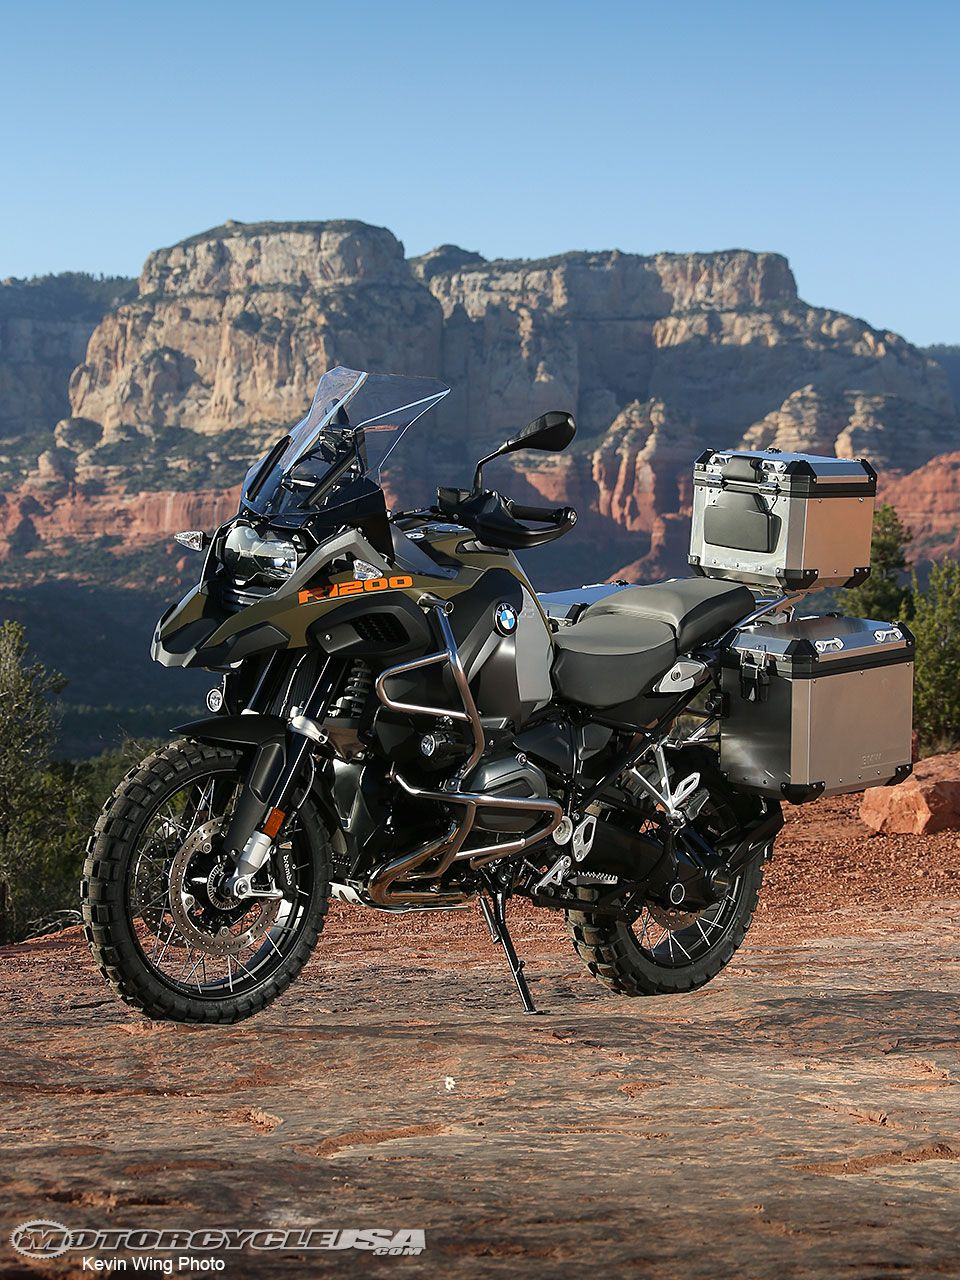 2014 bmw r1200gs adventure first ride photos motorcycle usa on off pinterest bmw bmw. Black Bedroom Furniture Sets. Home Design Ideas